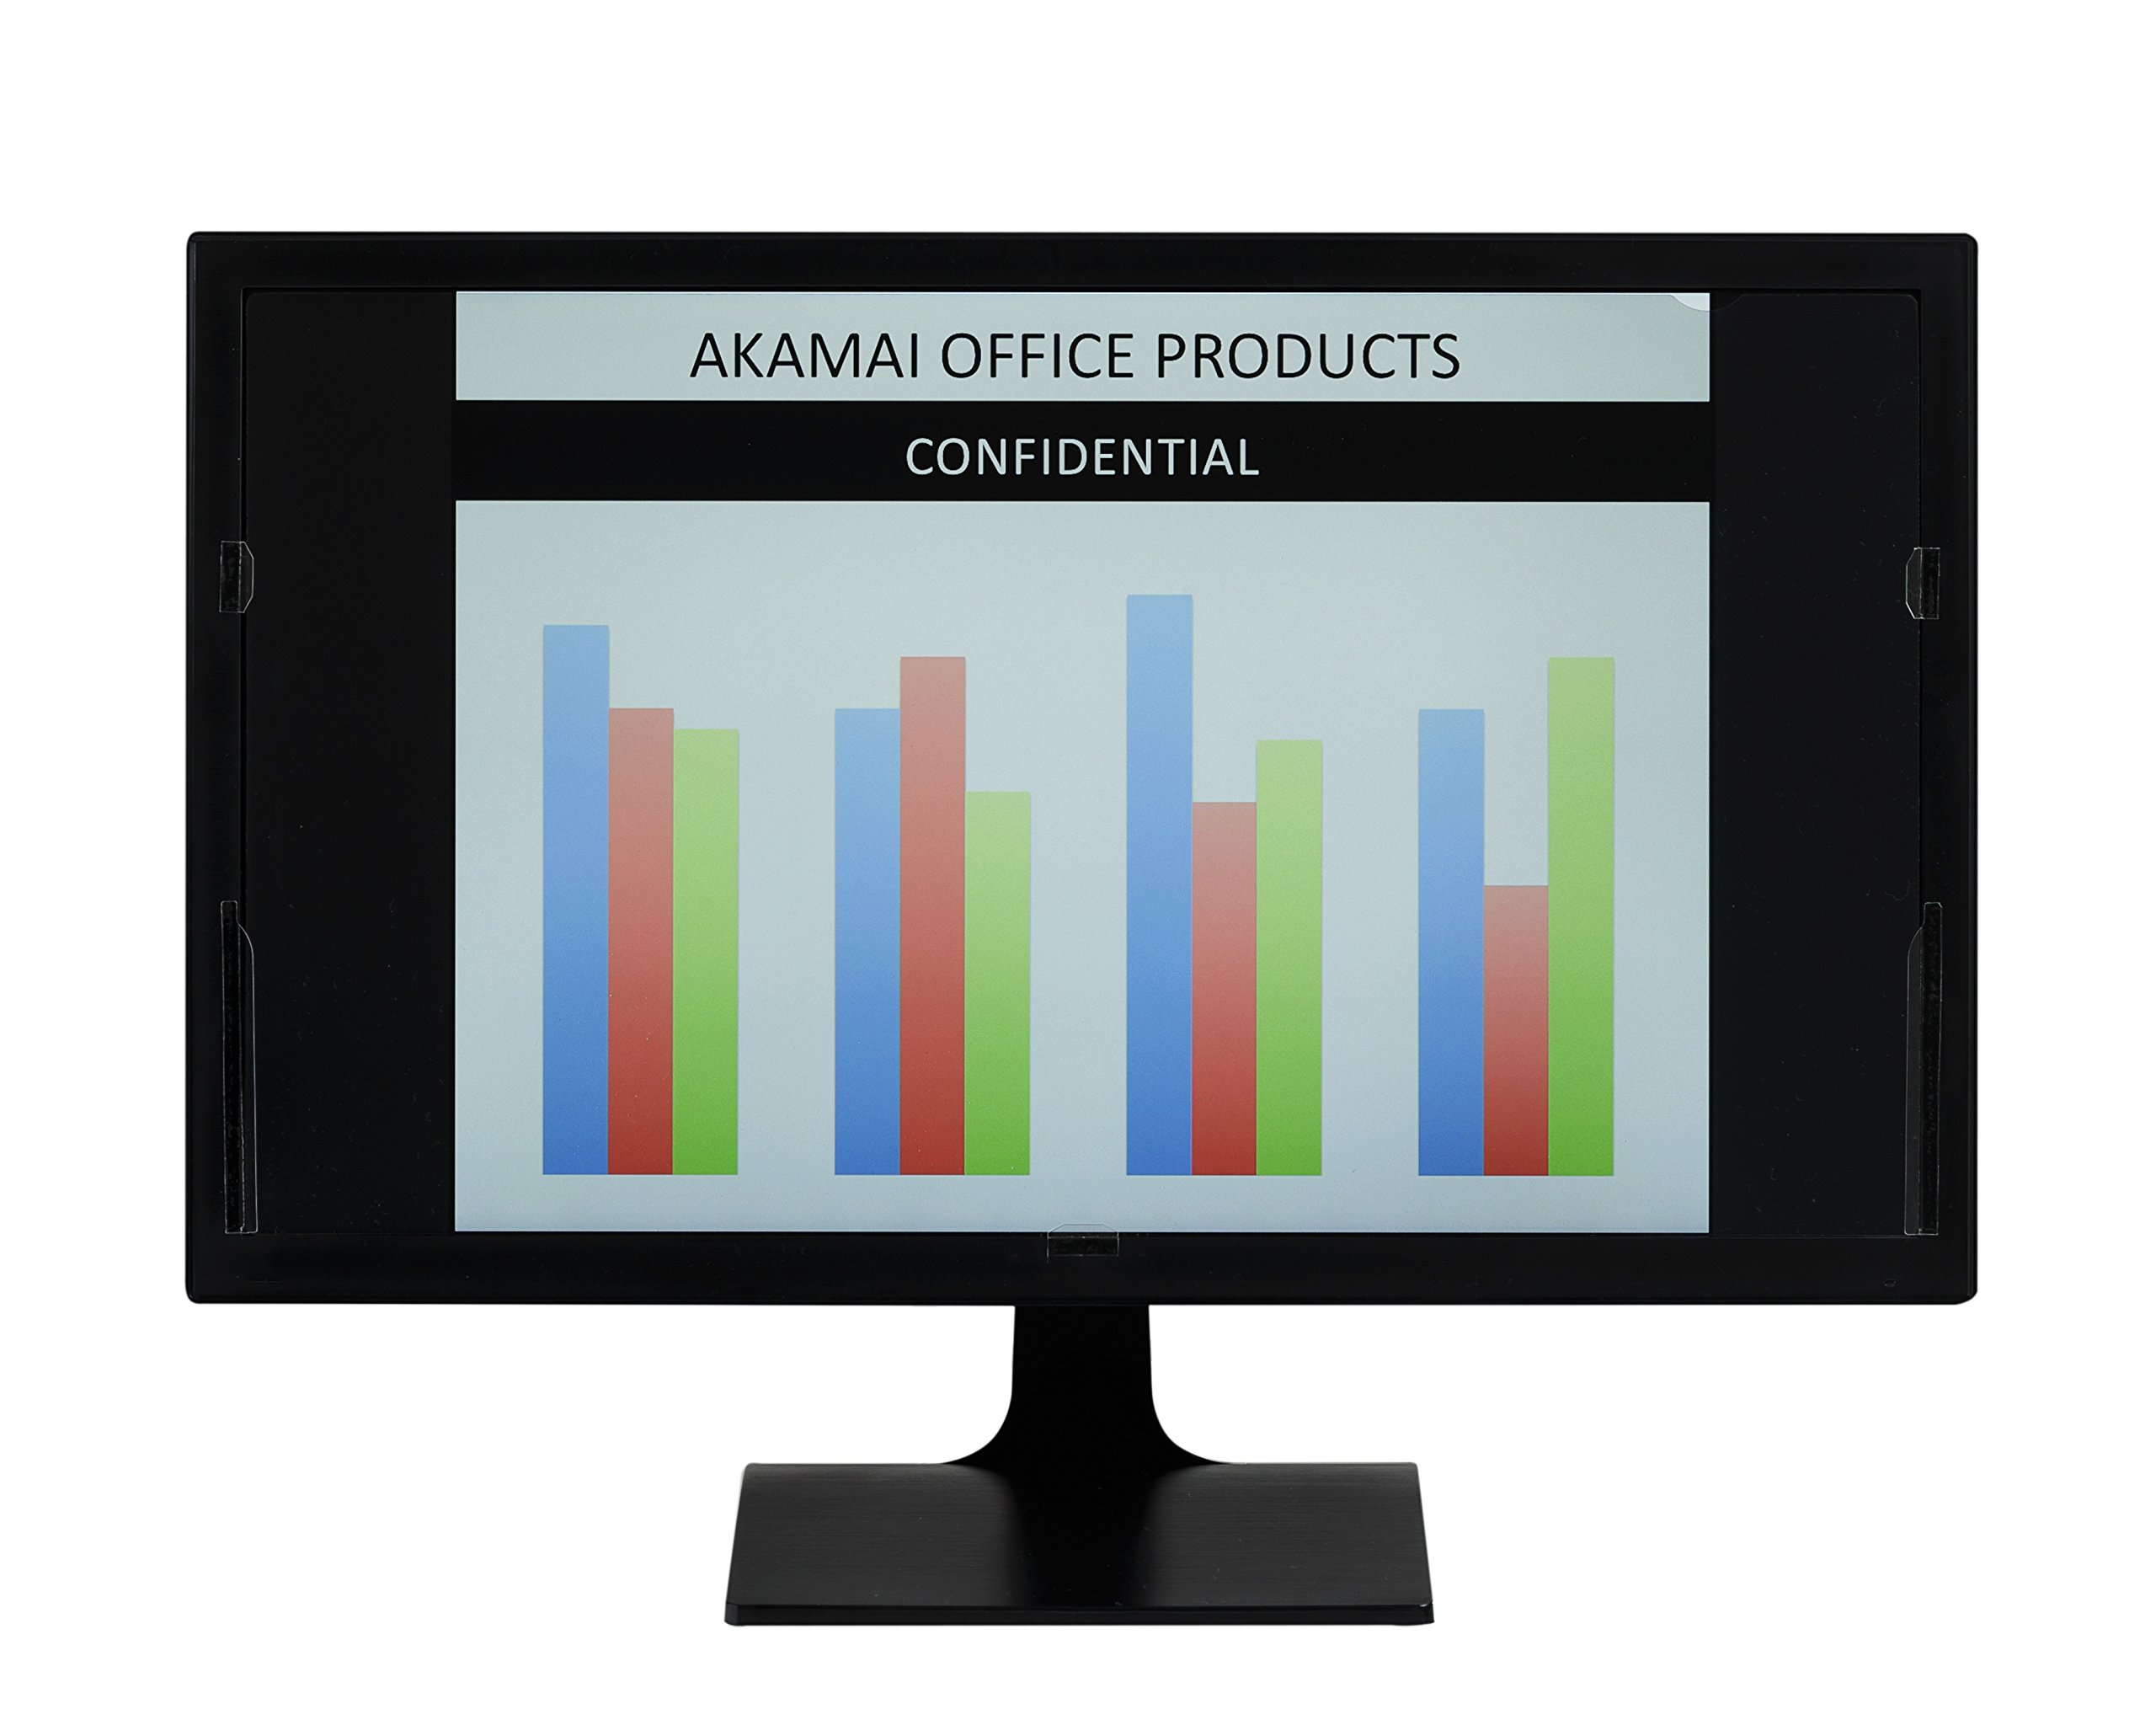 Akamai Office Products 21.5 inch (Diagonally Measured) Privacy Screen Filter for Widescreen Computer Monitors & Latest 21.5 inch iMac Retina 4K Anti-Glare - Please Measure Carefully! by Akamai Office Products (Image #3)